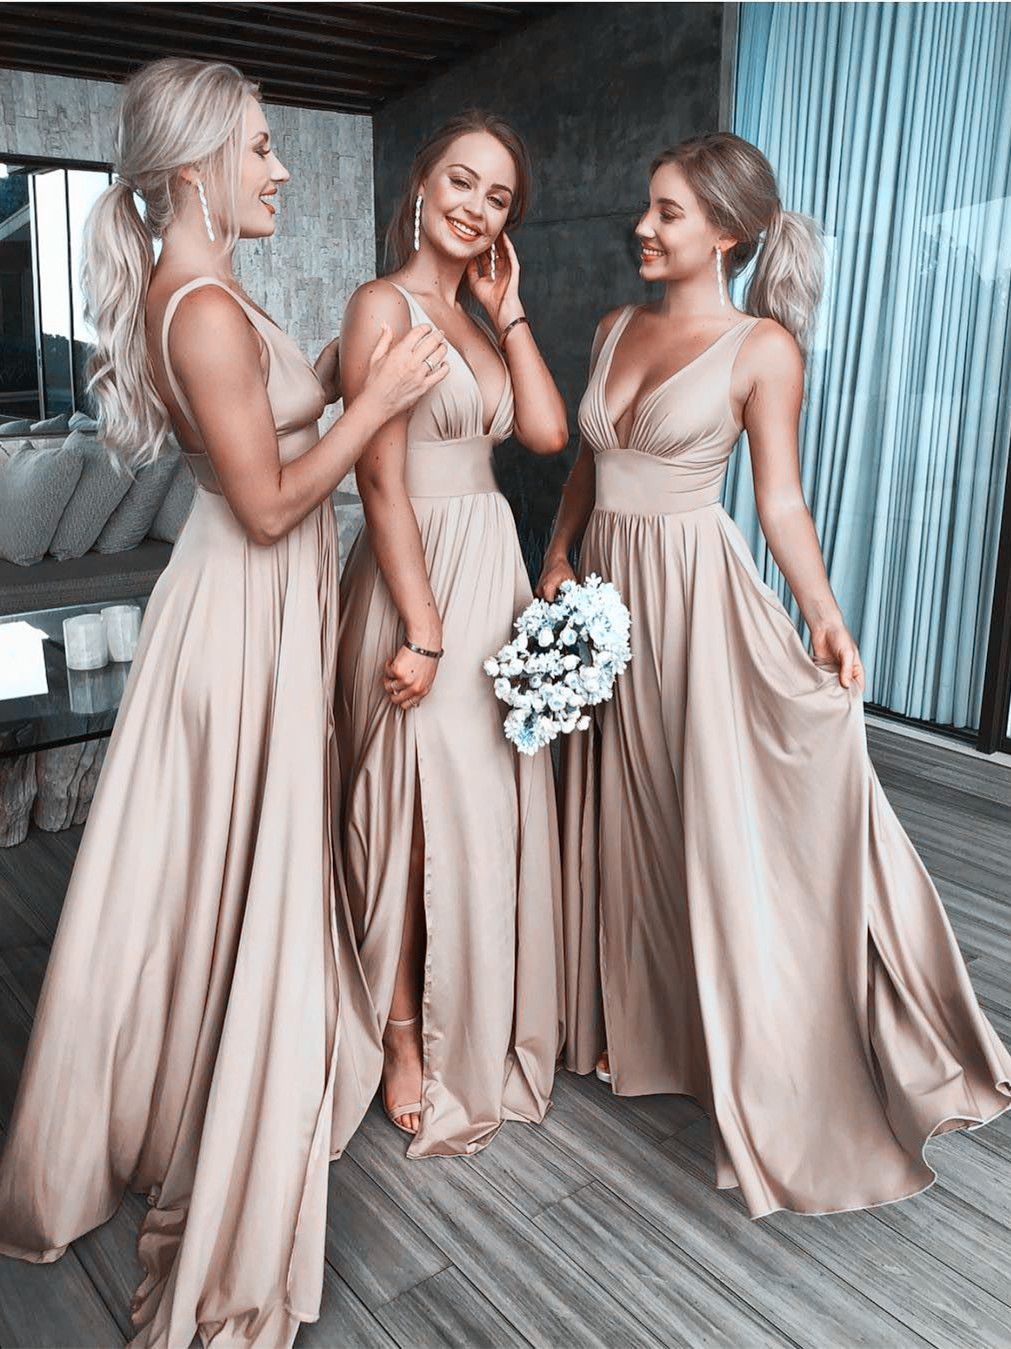 21a3a22c5438 blush soft bridesmaid dresses with low back, fashion wedding party gowns,  #prom #